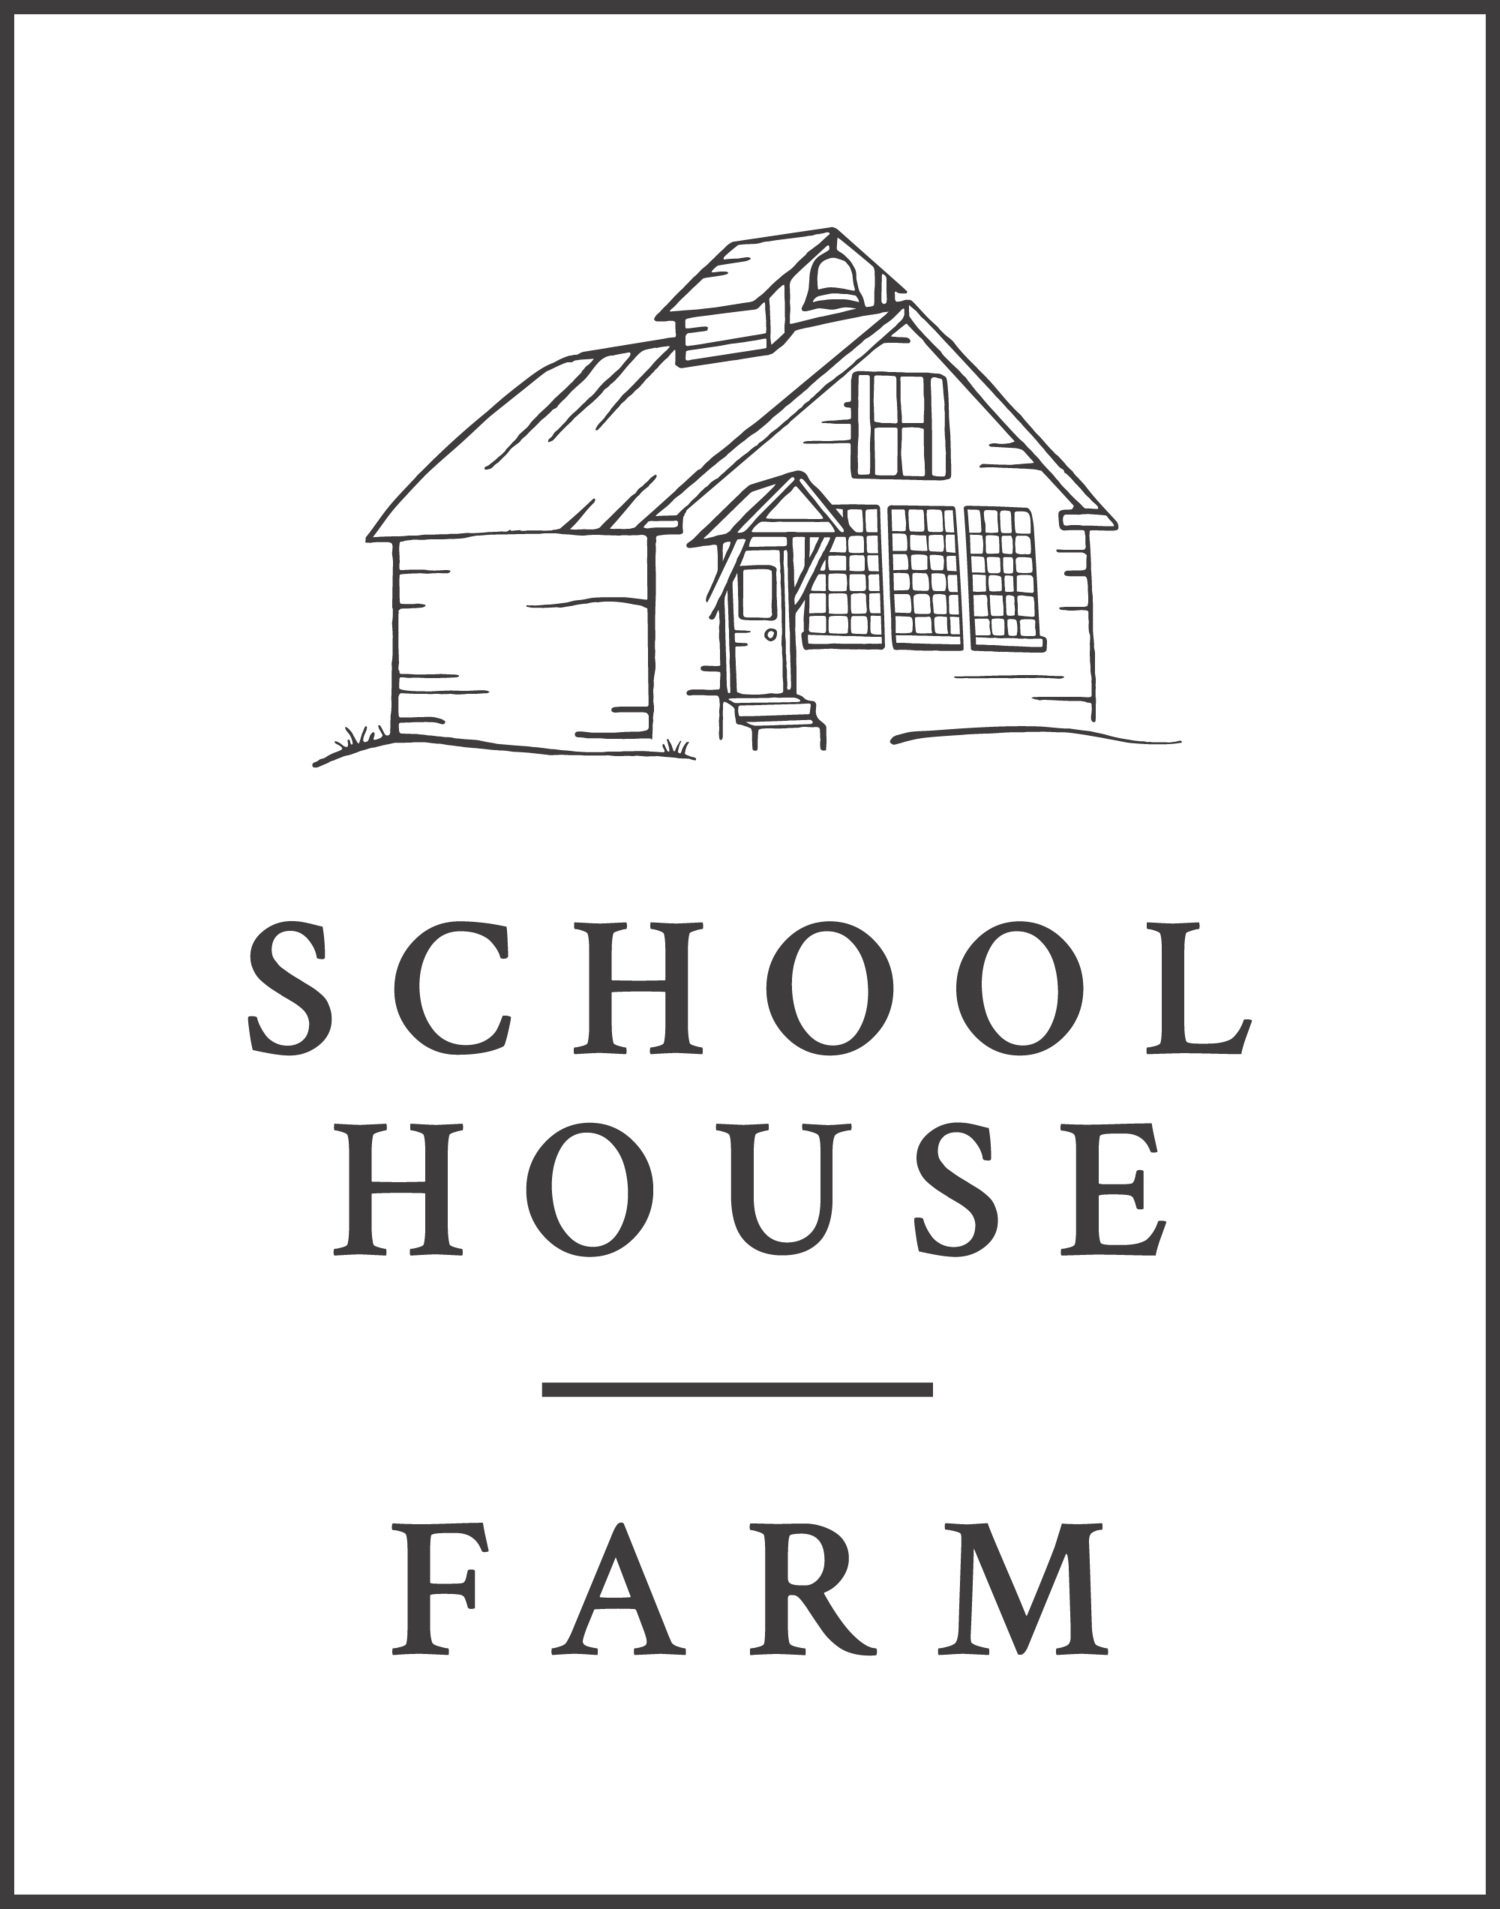 Schoolhouse Farm